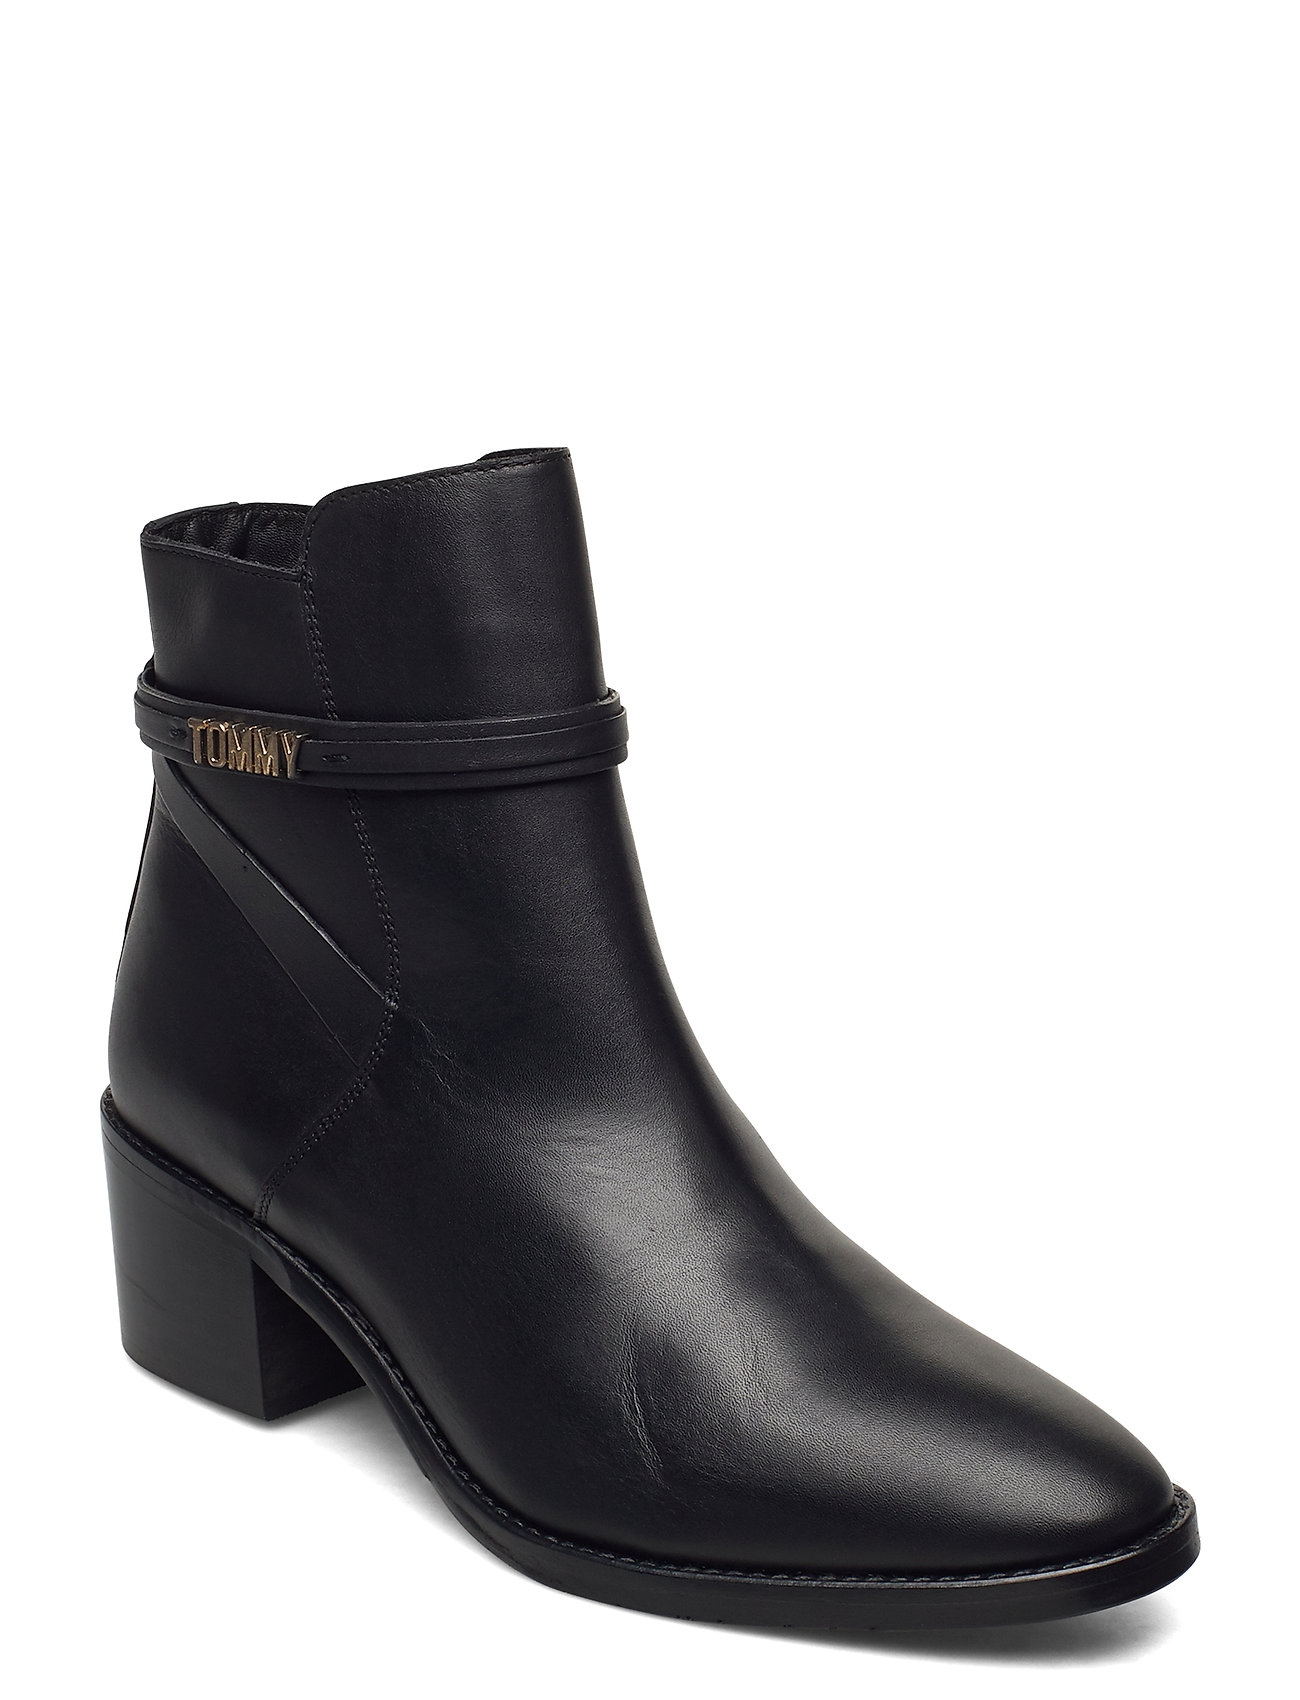 Image of Block Branding Leather Mid Boot Shoes Boots Ankle Boots Ankle Boot - Heel Sort Tommy Hilfiger (3452759805)